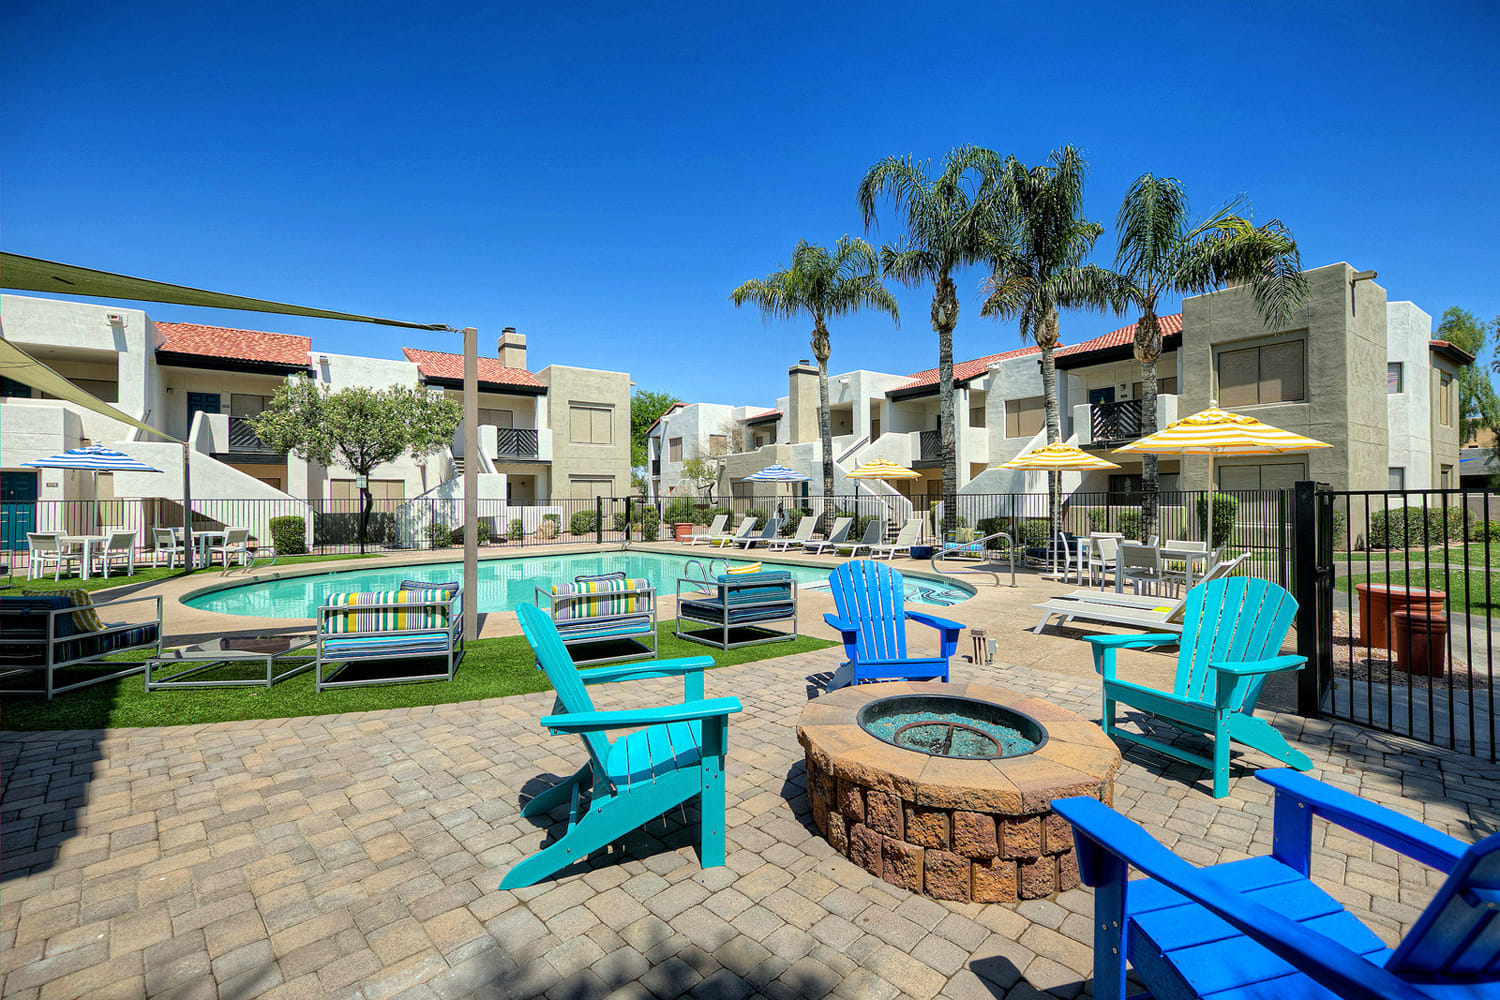 100 Best Apartments For Rent In Tempe, AZ (with pictures)!